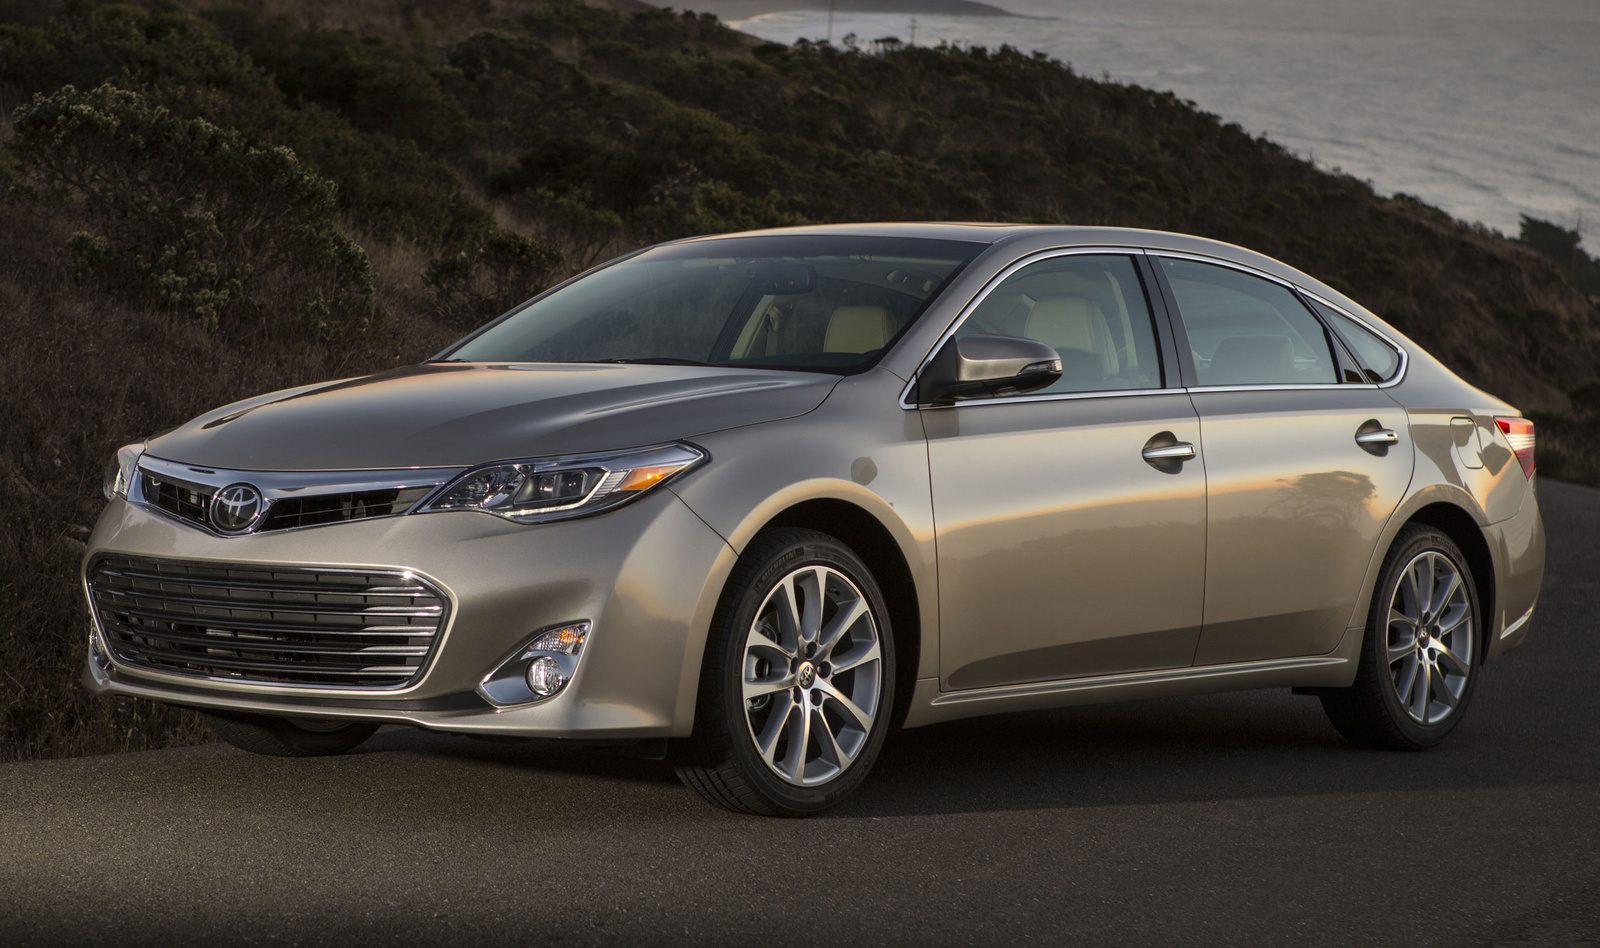 2015 Toyota Avalon - Review - CarGurus